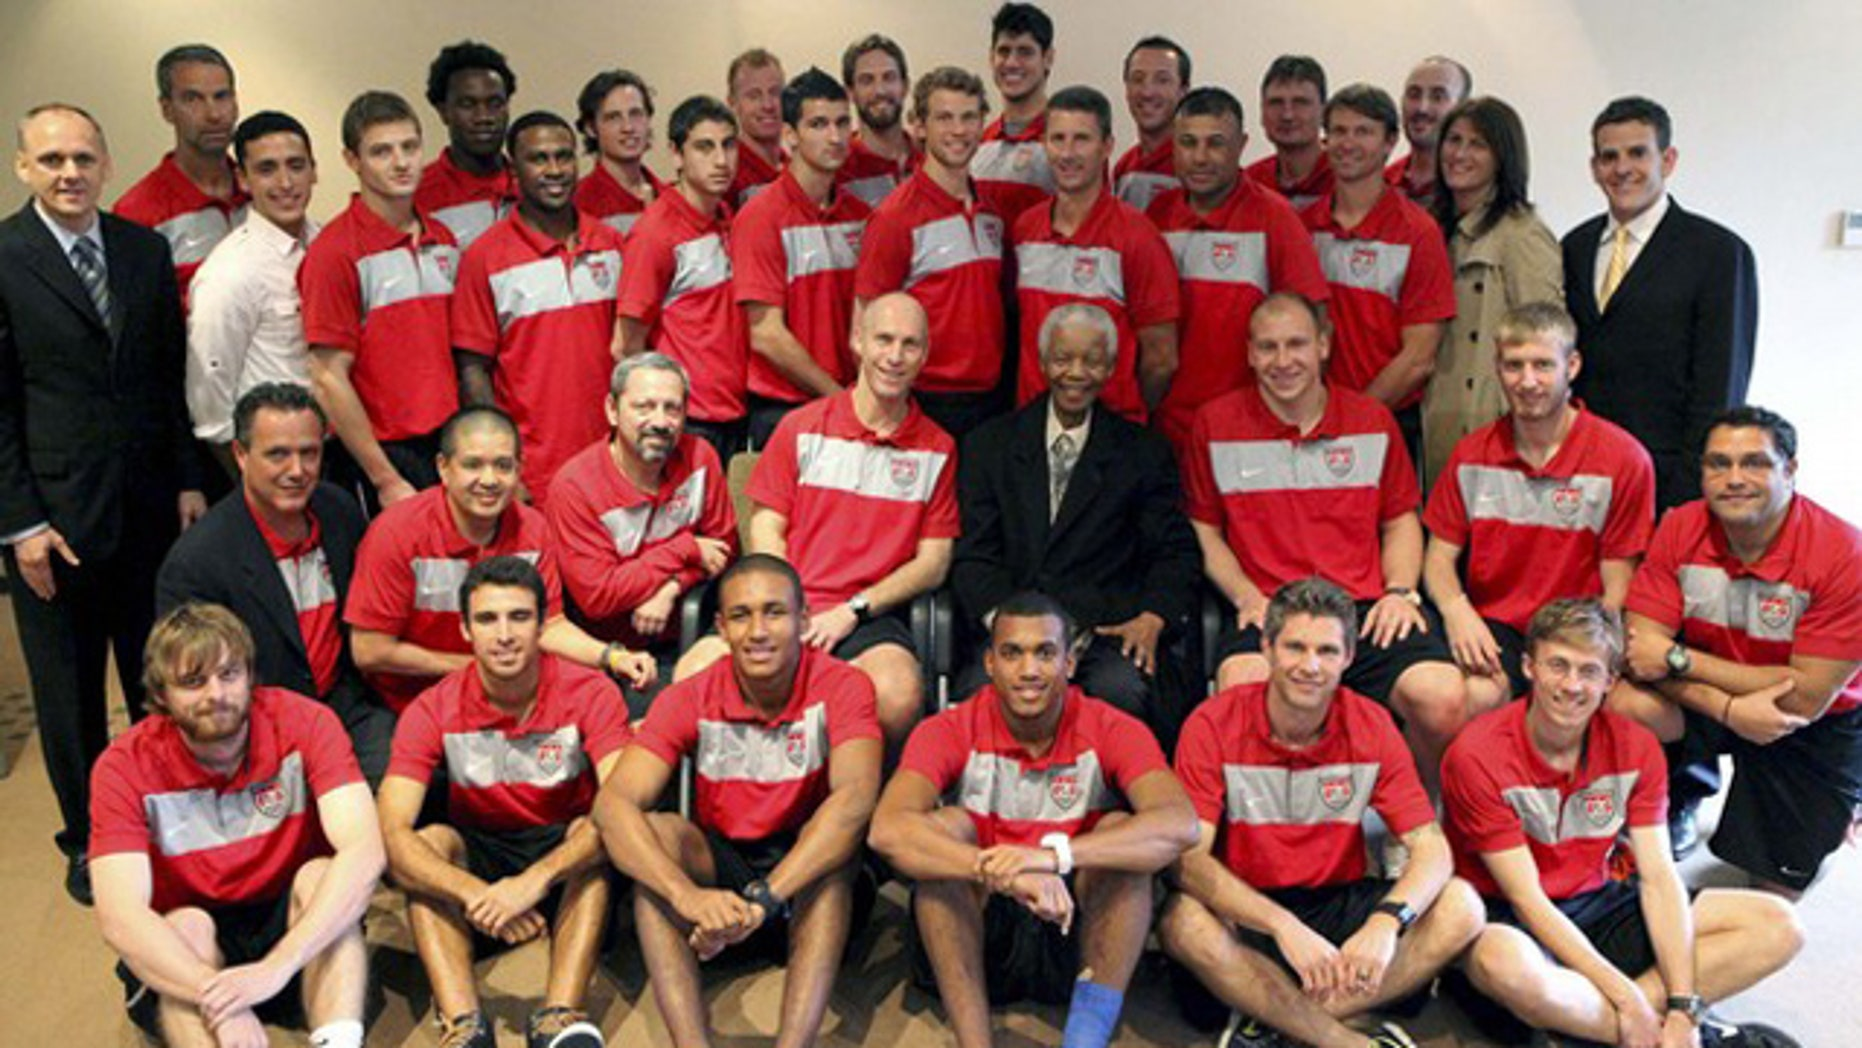 The U.S. mens national soccer team pose for a group picture with former Sou0th African President Nelson Mandela (C) at his office in Houghton, Johannesburg, November 18, 210.